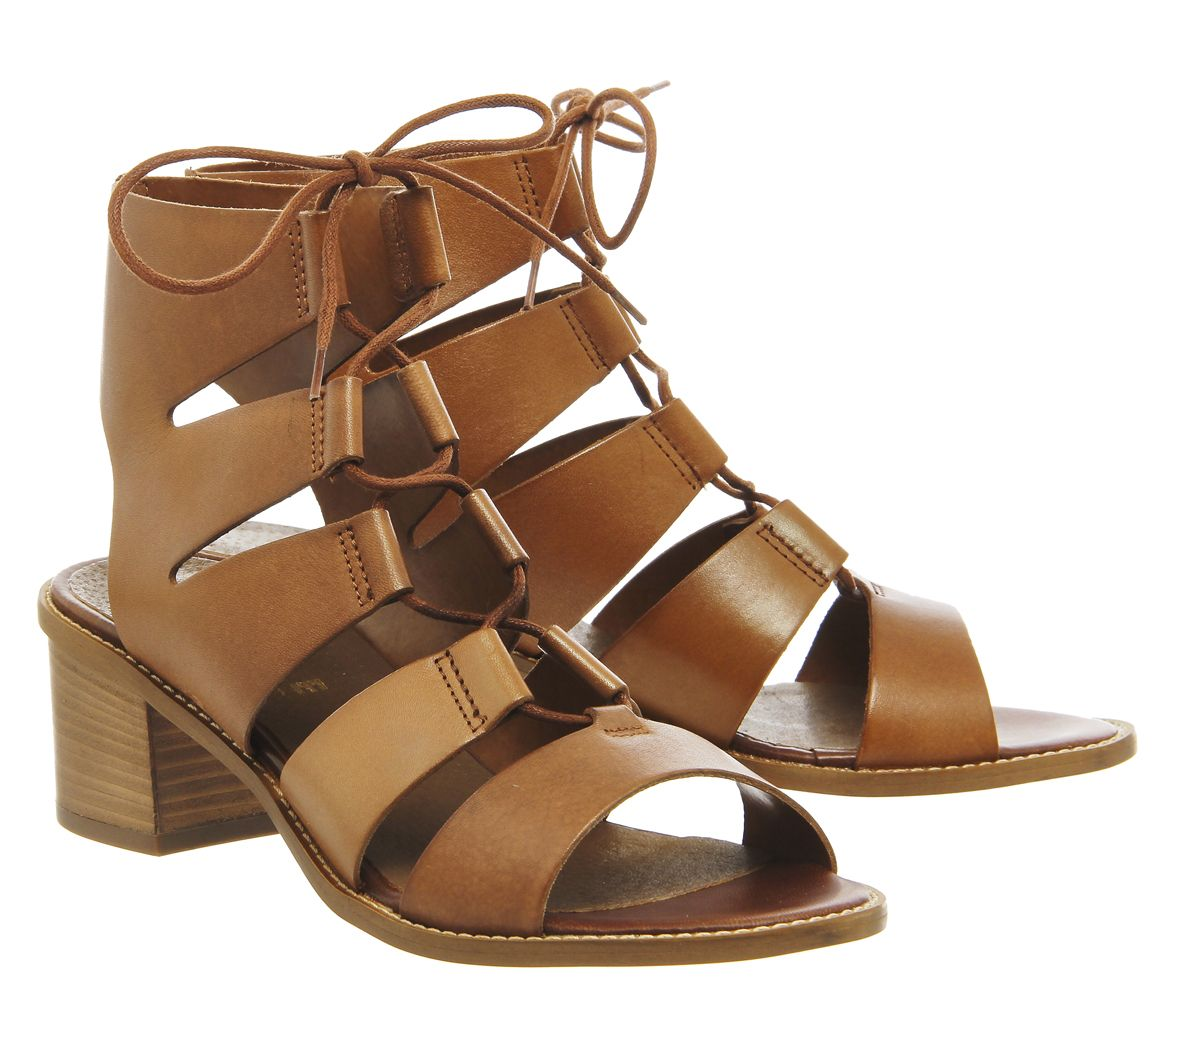 Office Wisteria Gilly Lace Up Block Heel Tan Leather - Mid Heels